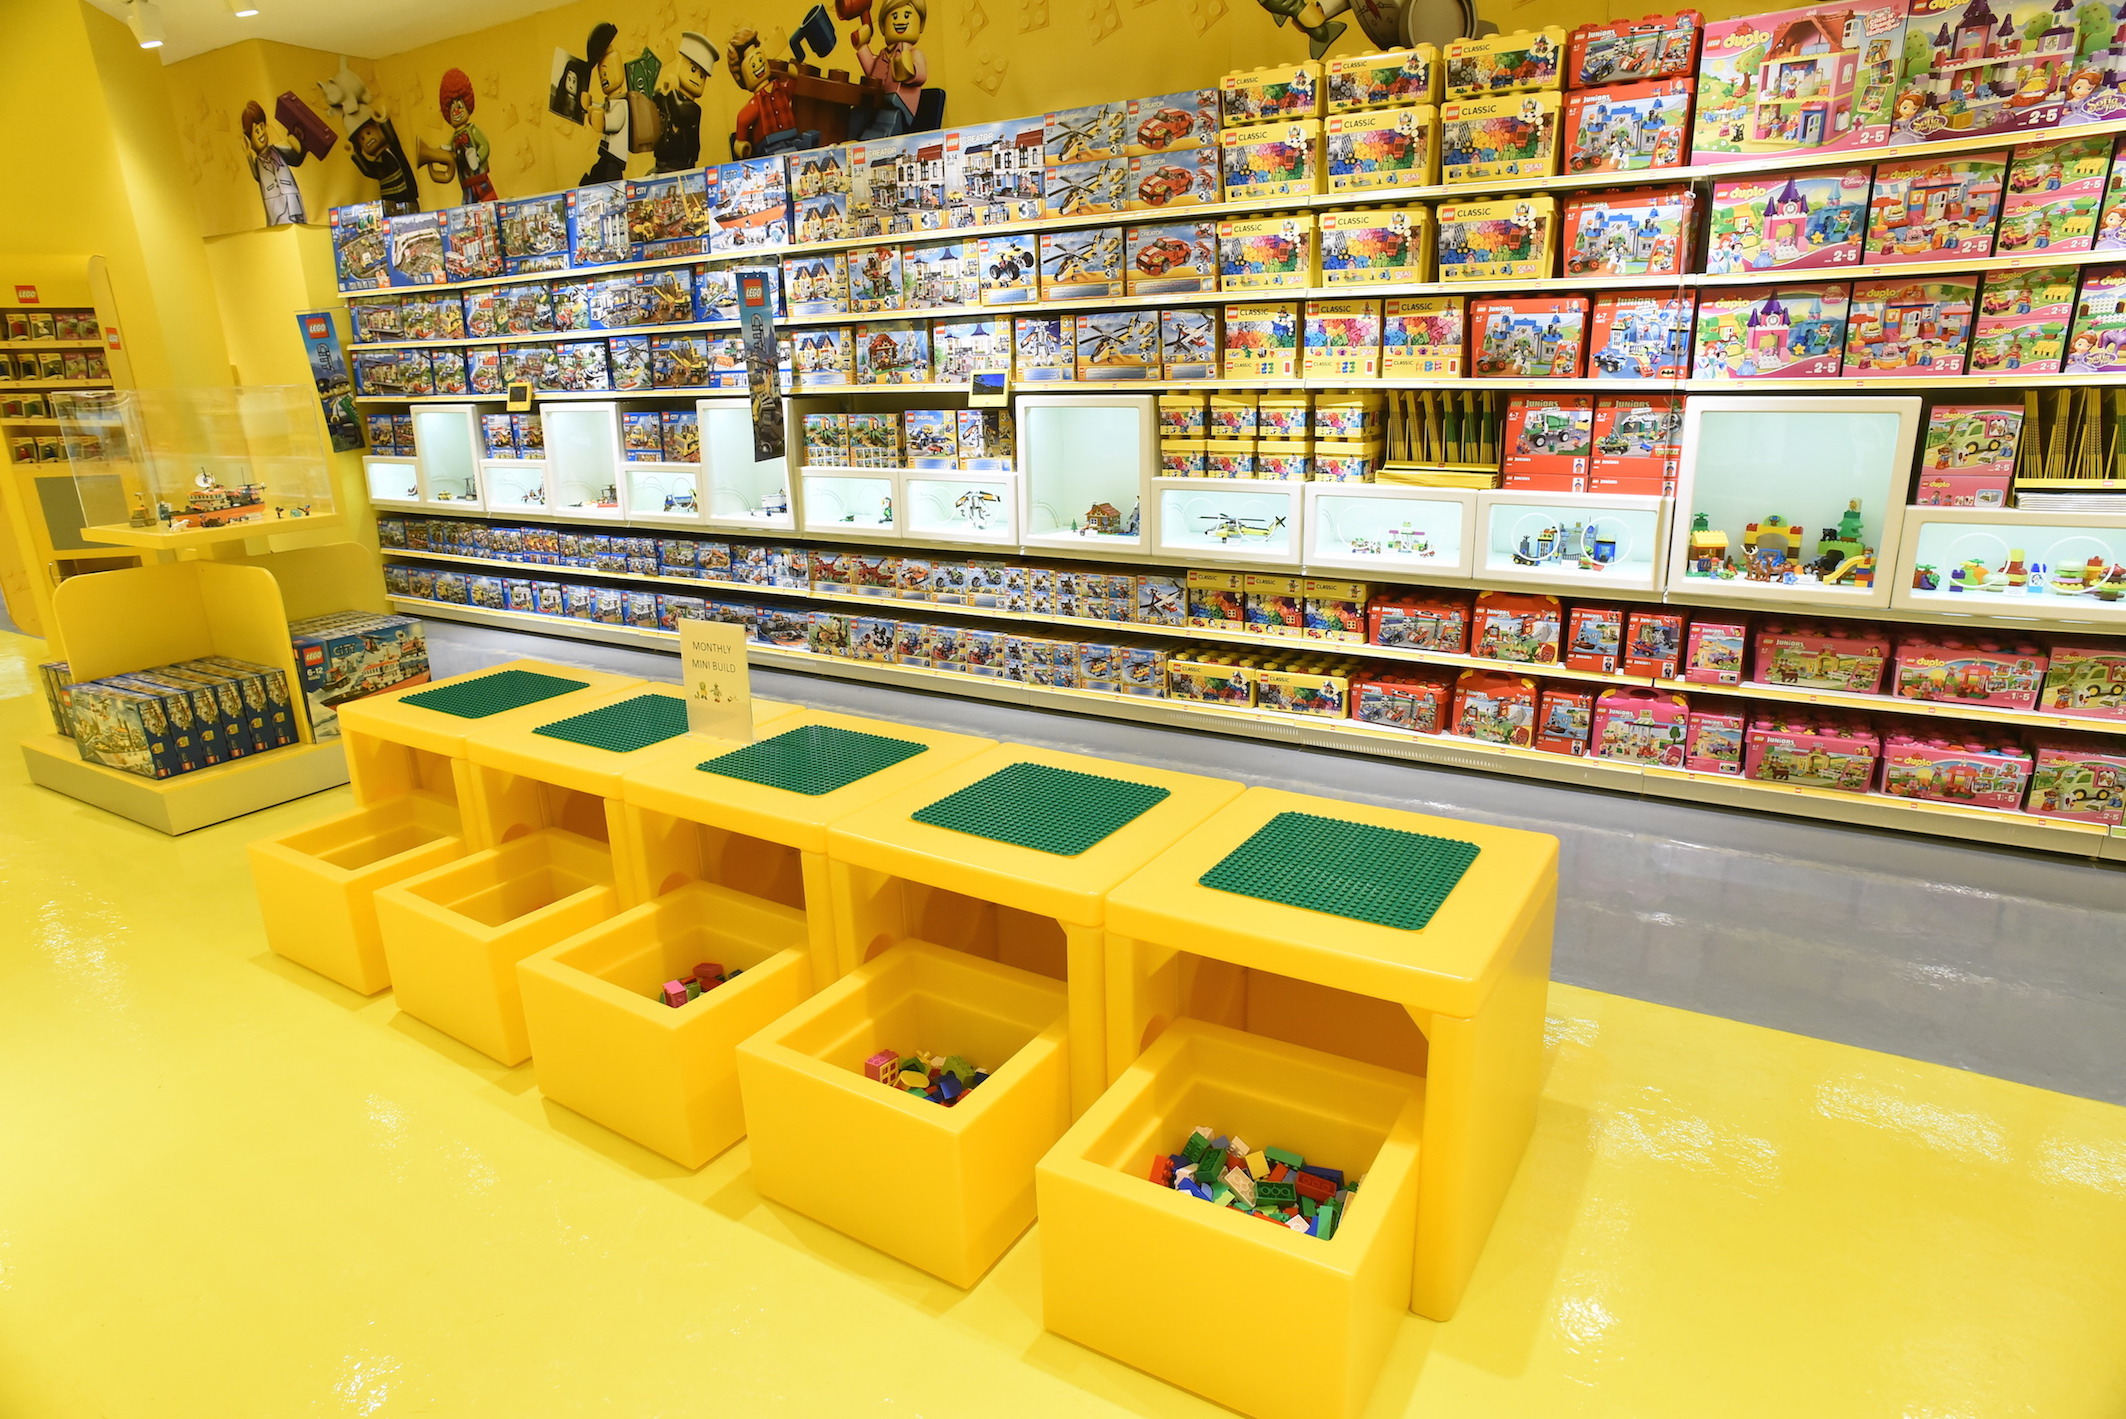 Your survey did not work. My receipt code this time was Lego Stockholm , sales persons Cica and Mirjam. I visited your Lego store in Stockholm on behalf of my grandsons (living in Helsinki, Finland) aged 5 and 3.